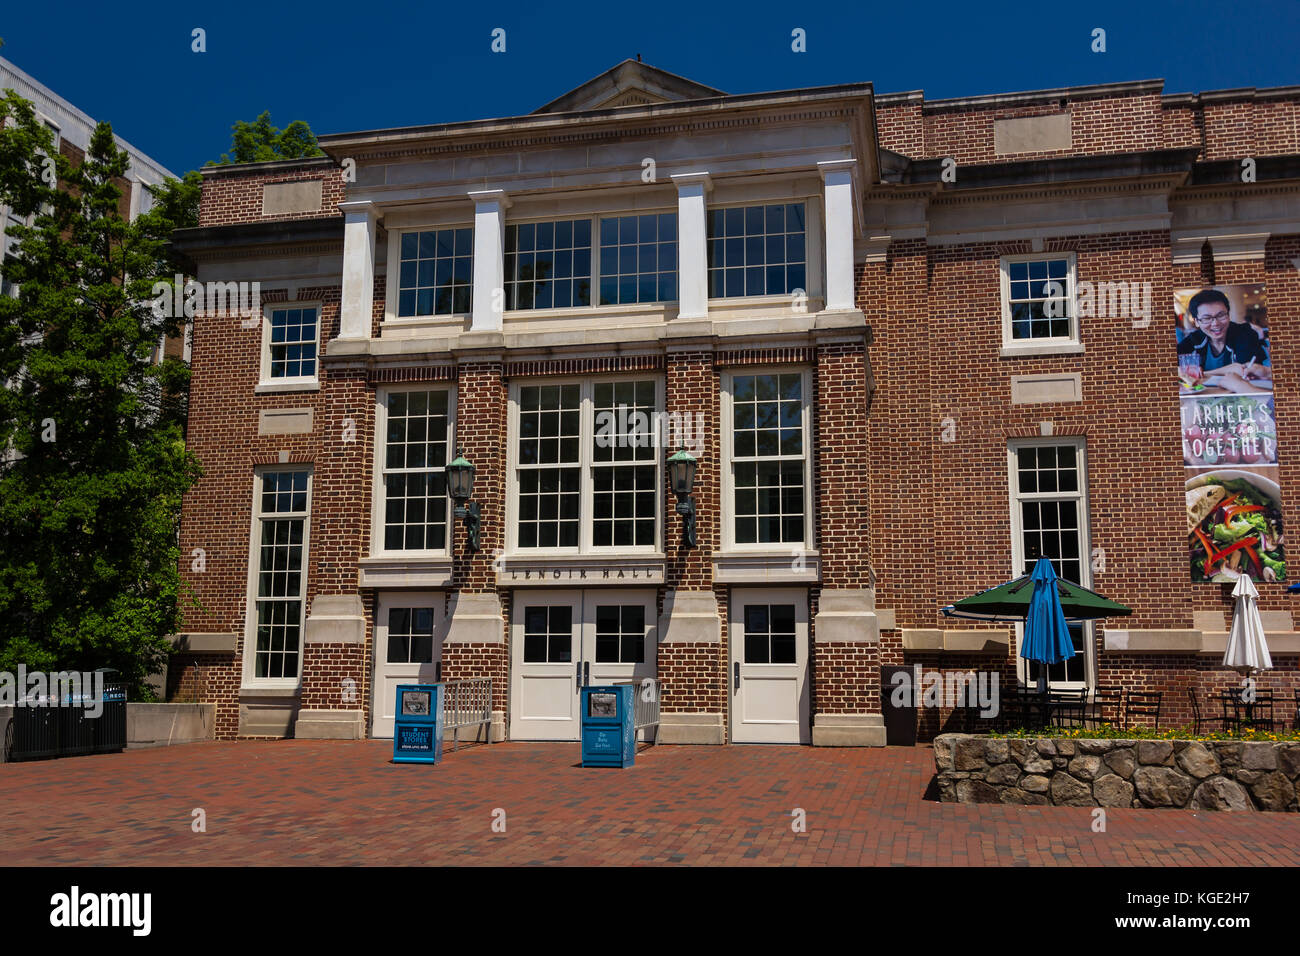 Lenoir Hall at the University of North Carolina at Chapel Hill in Chapel Hill, North Carolina.  Built in 1939. - Stock Image